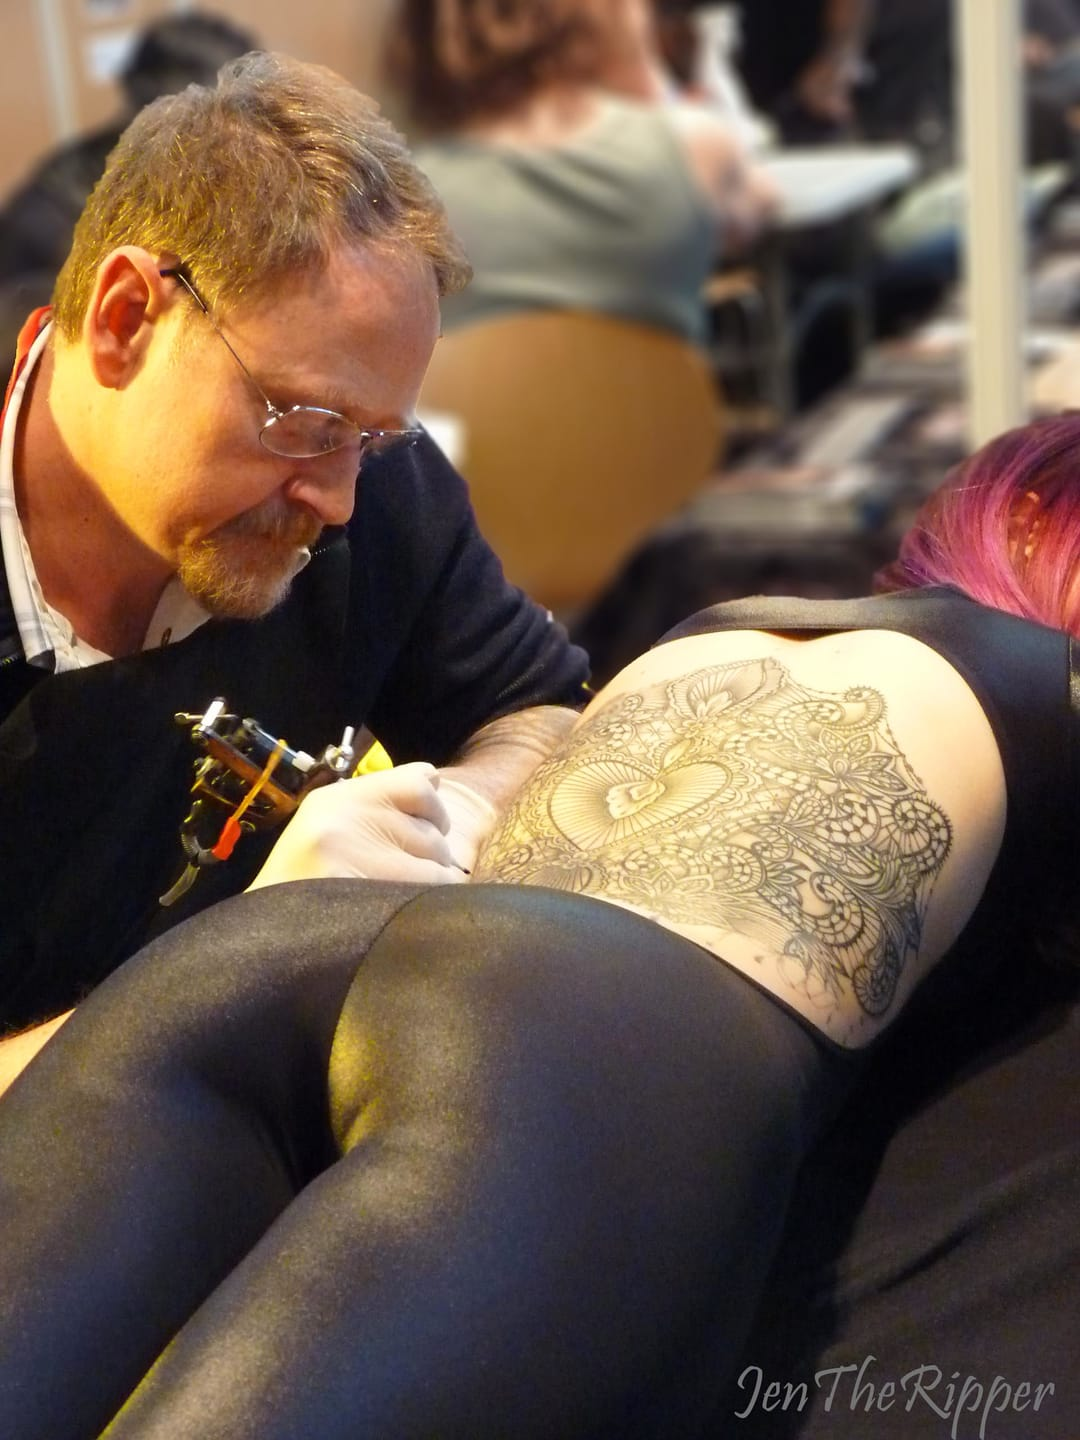 Marco Manzo working on a backpiece at Paris Tattoo Convention 2015. Photo JenTheRipper.